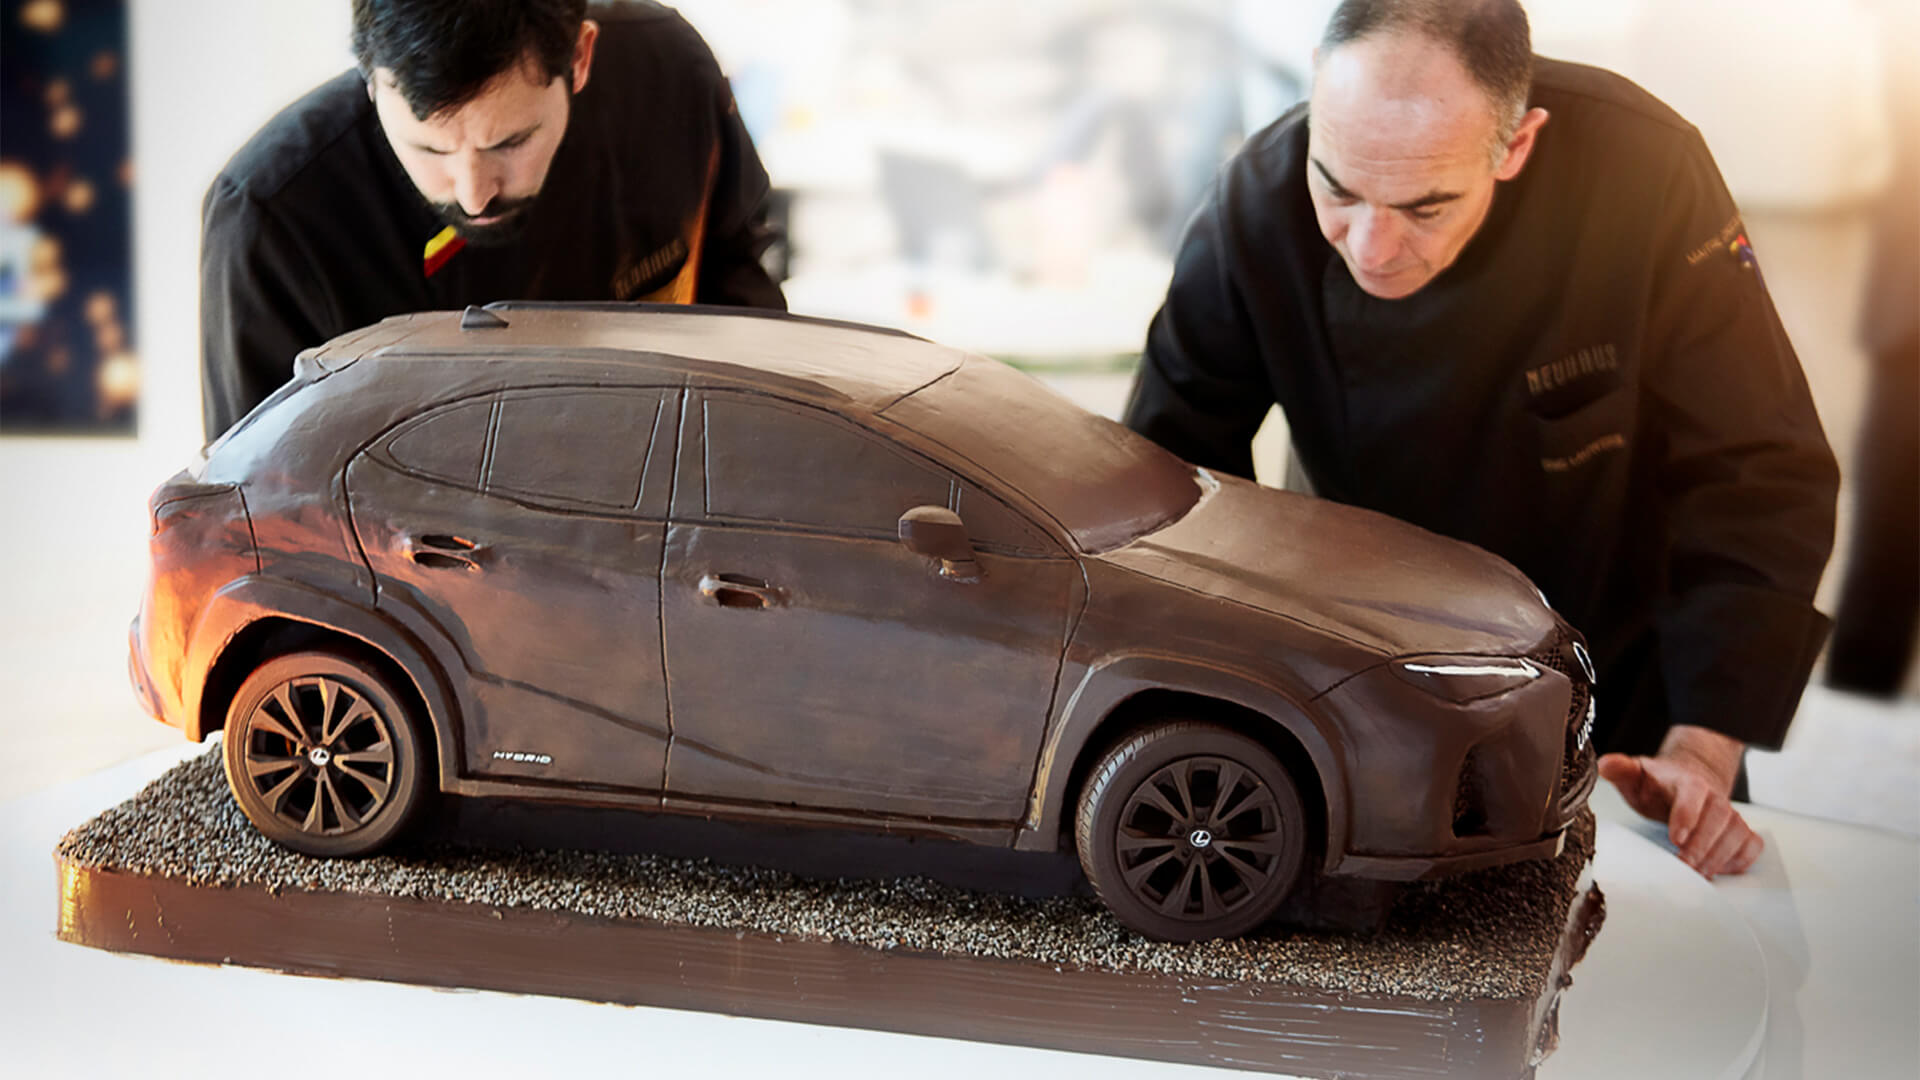 2019 lexus lounge UX Chocolate Car 1920x1080 09